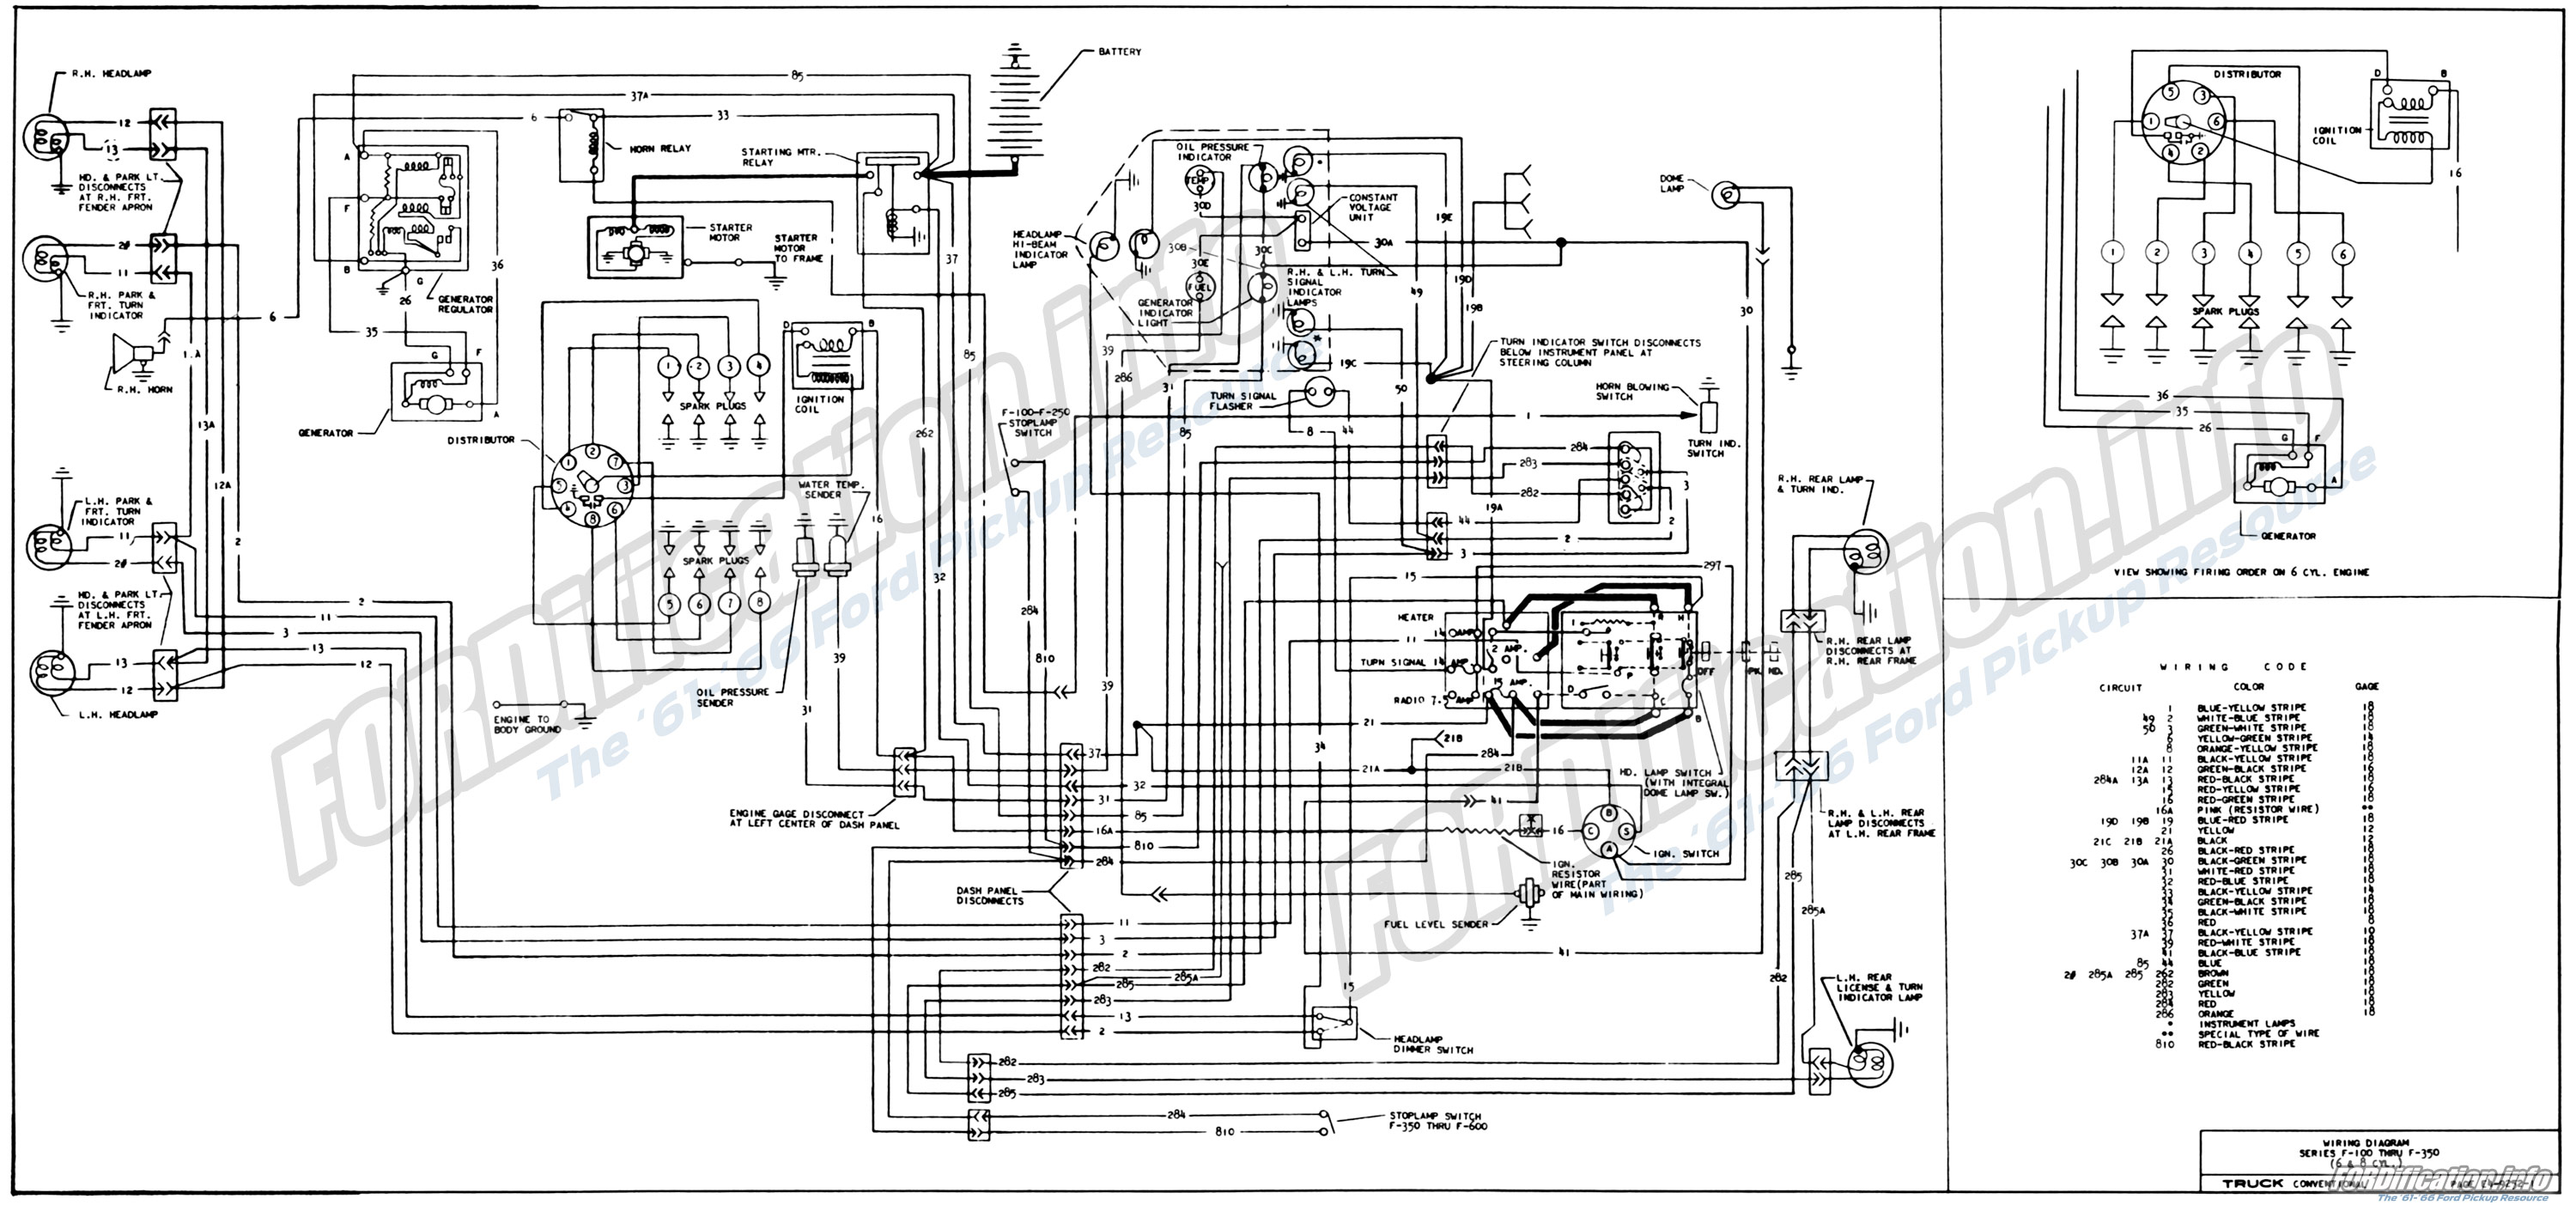 1964 F100 Wiring Diagram - Wiring Diagram K10 F Turn Signal Wiring Diagram on